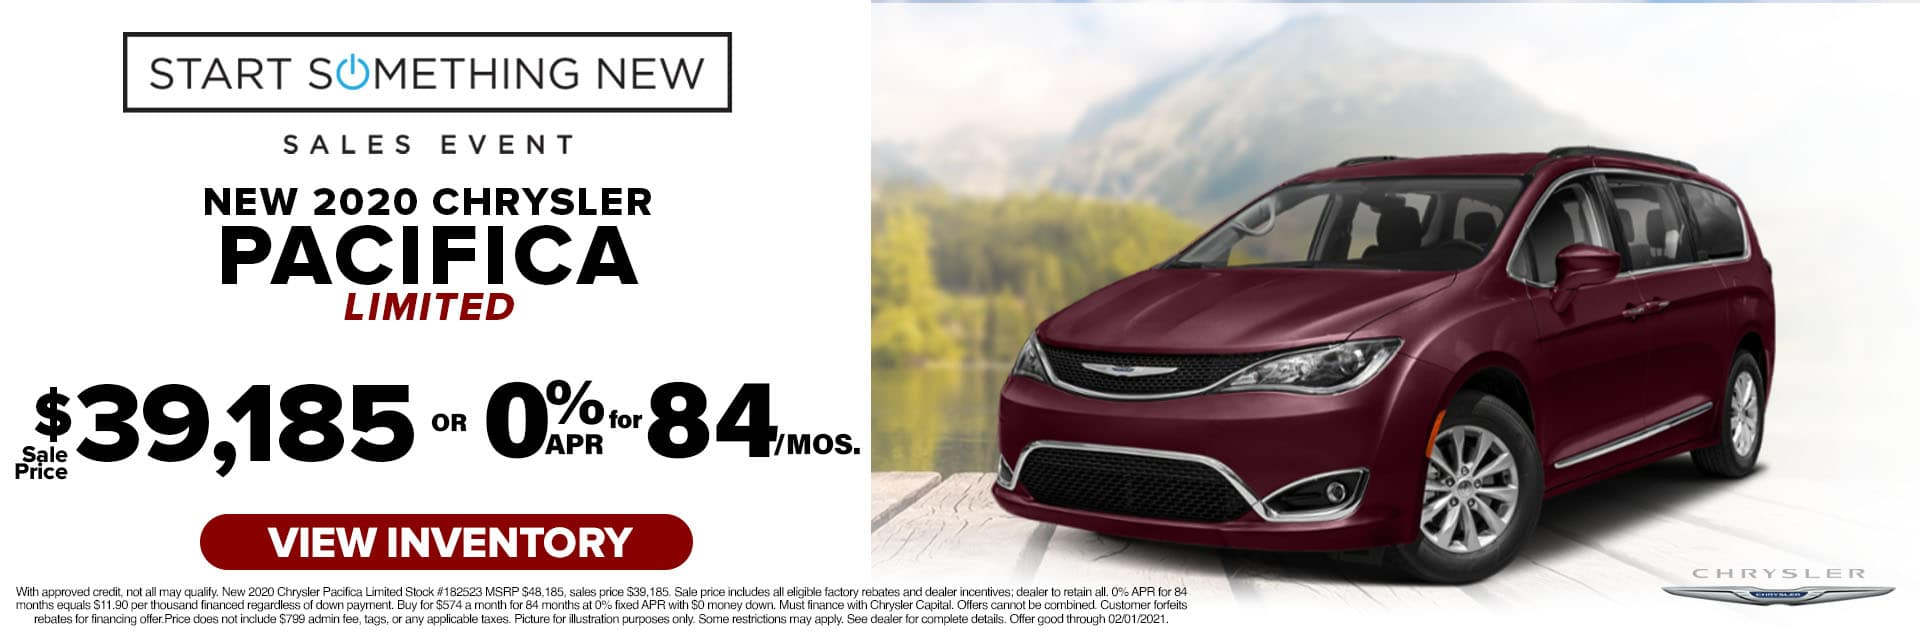 CLCP-January 2021-2020 Chrysler Pacifica